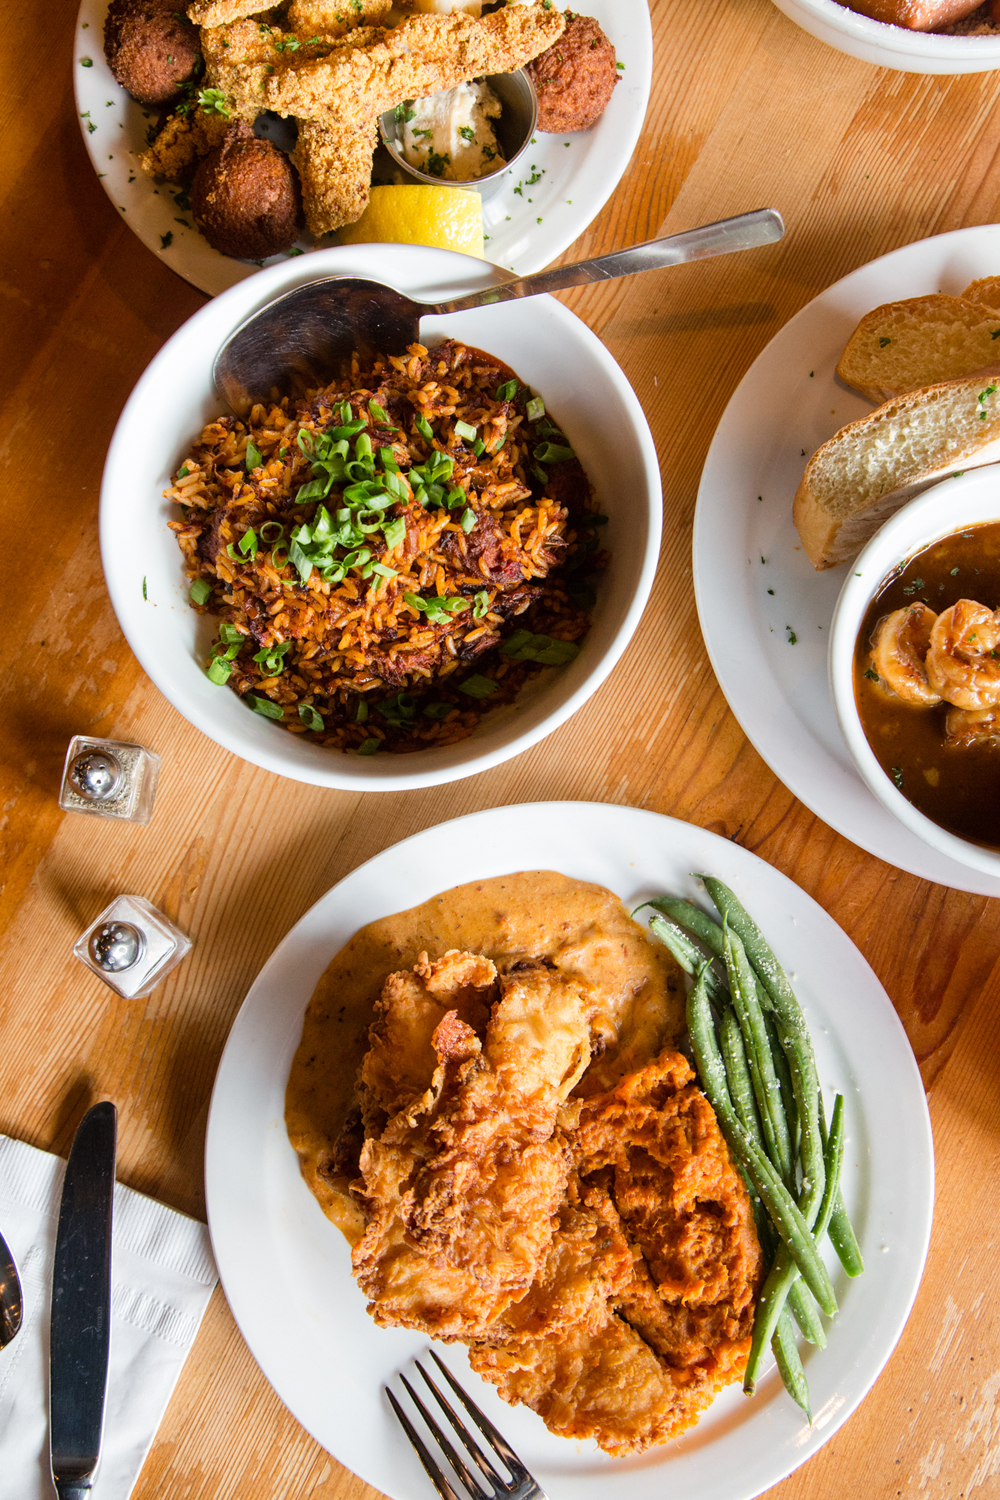 Dinner spread at Angeline's Louisiana Kitchen – Jambalaya, Hush Puppies, Fried Chicken ...